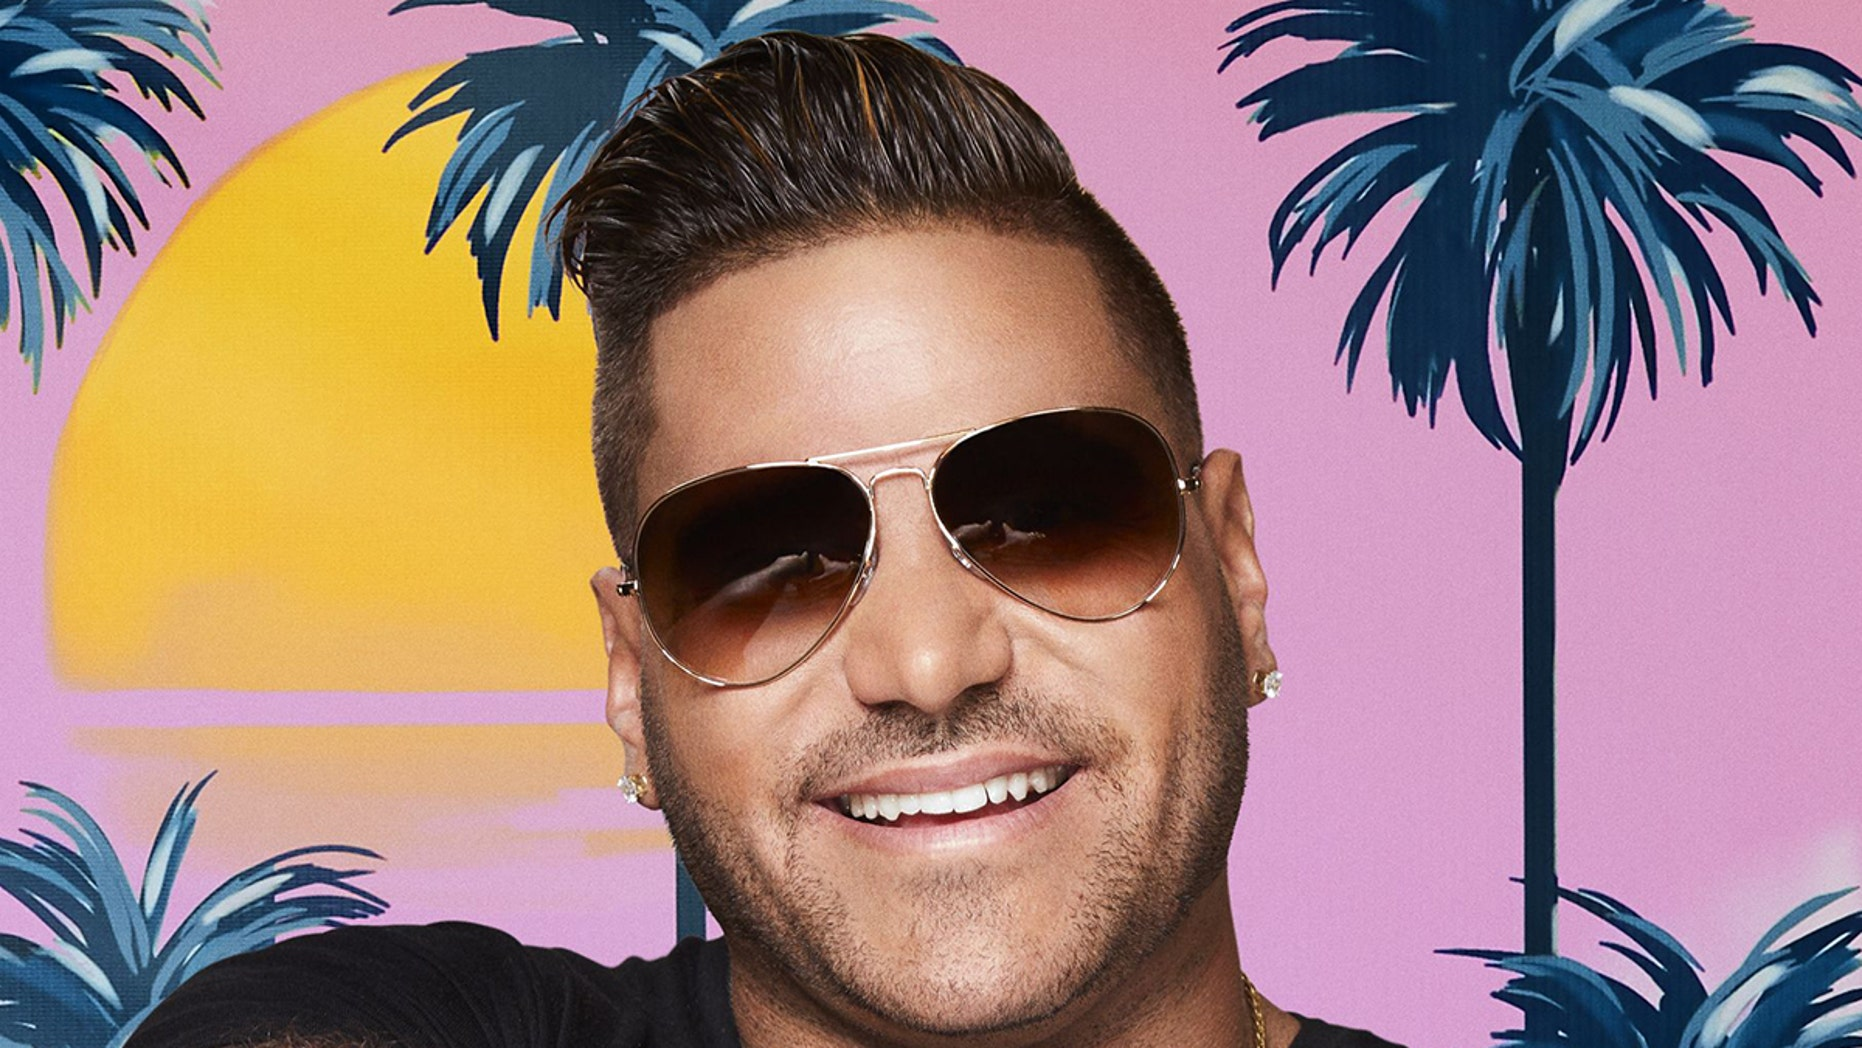 'Jersey Shore' star Ronnie Ortiz Magro is engaged in a very public fight with his girlfriend and the mother of his first child.